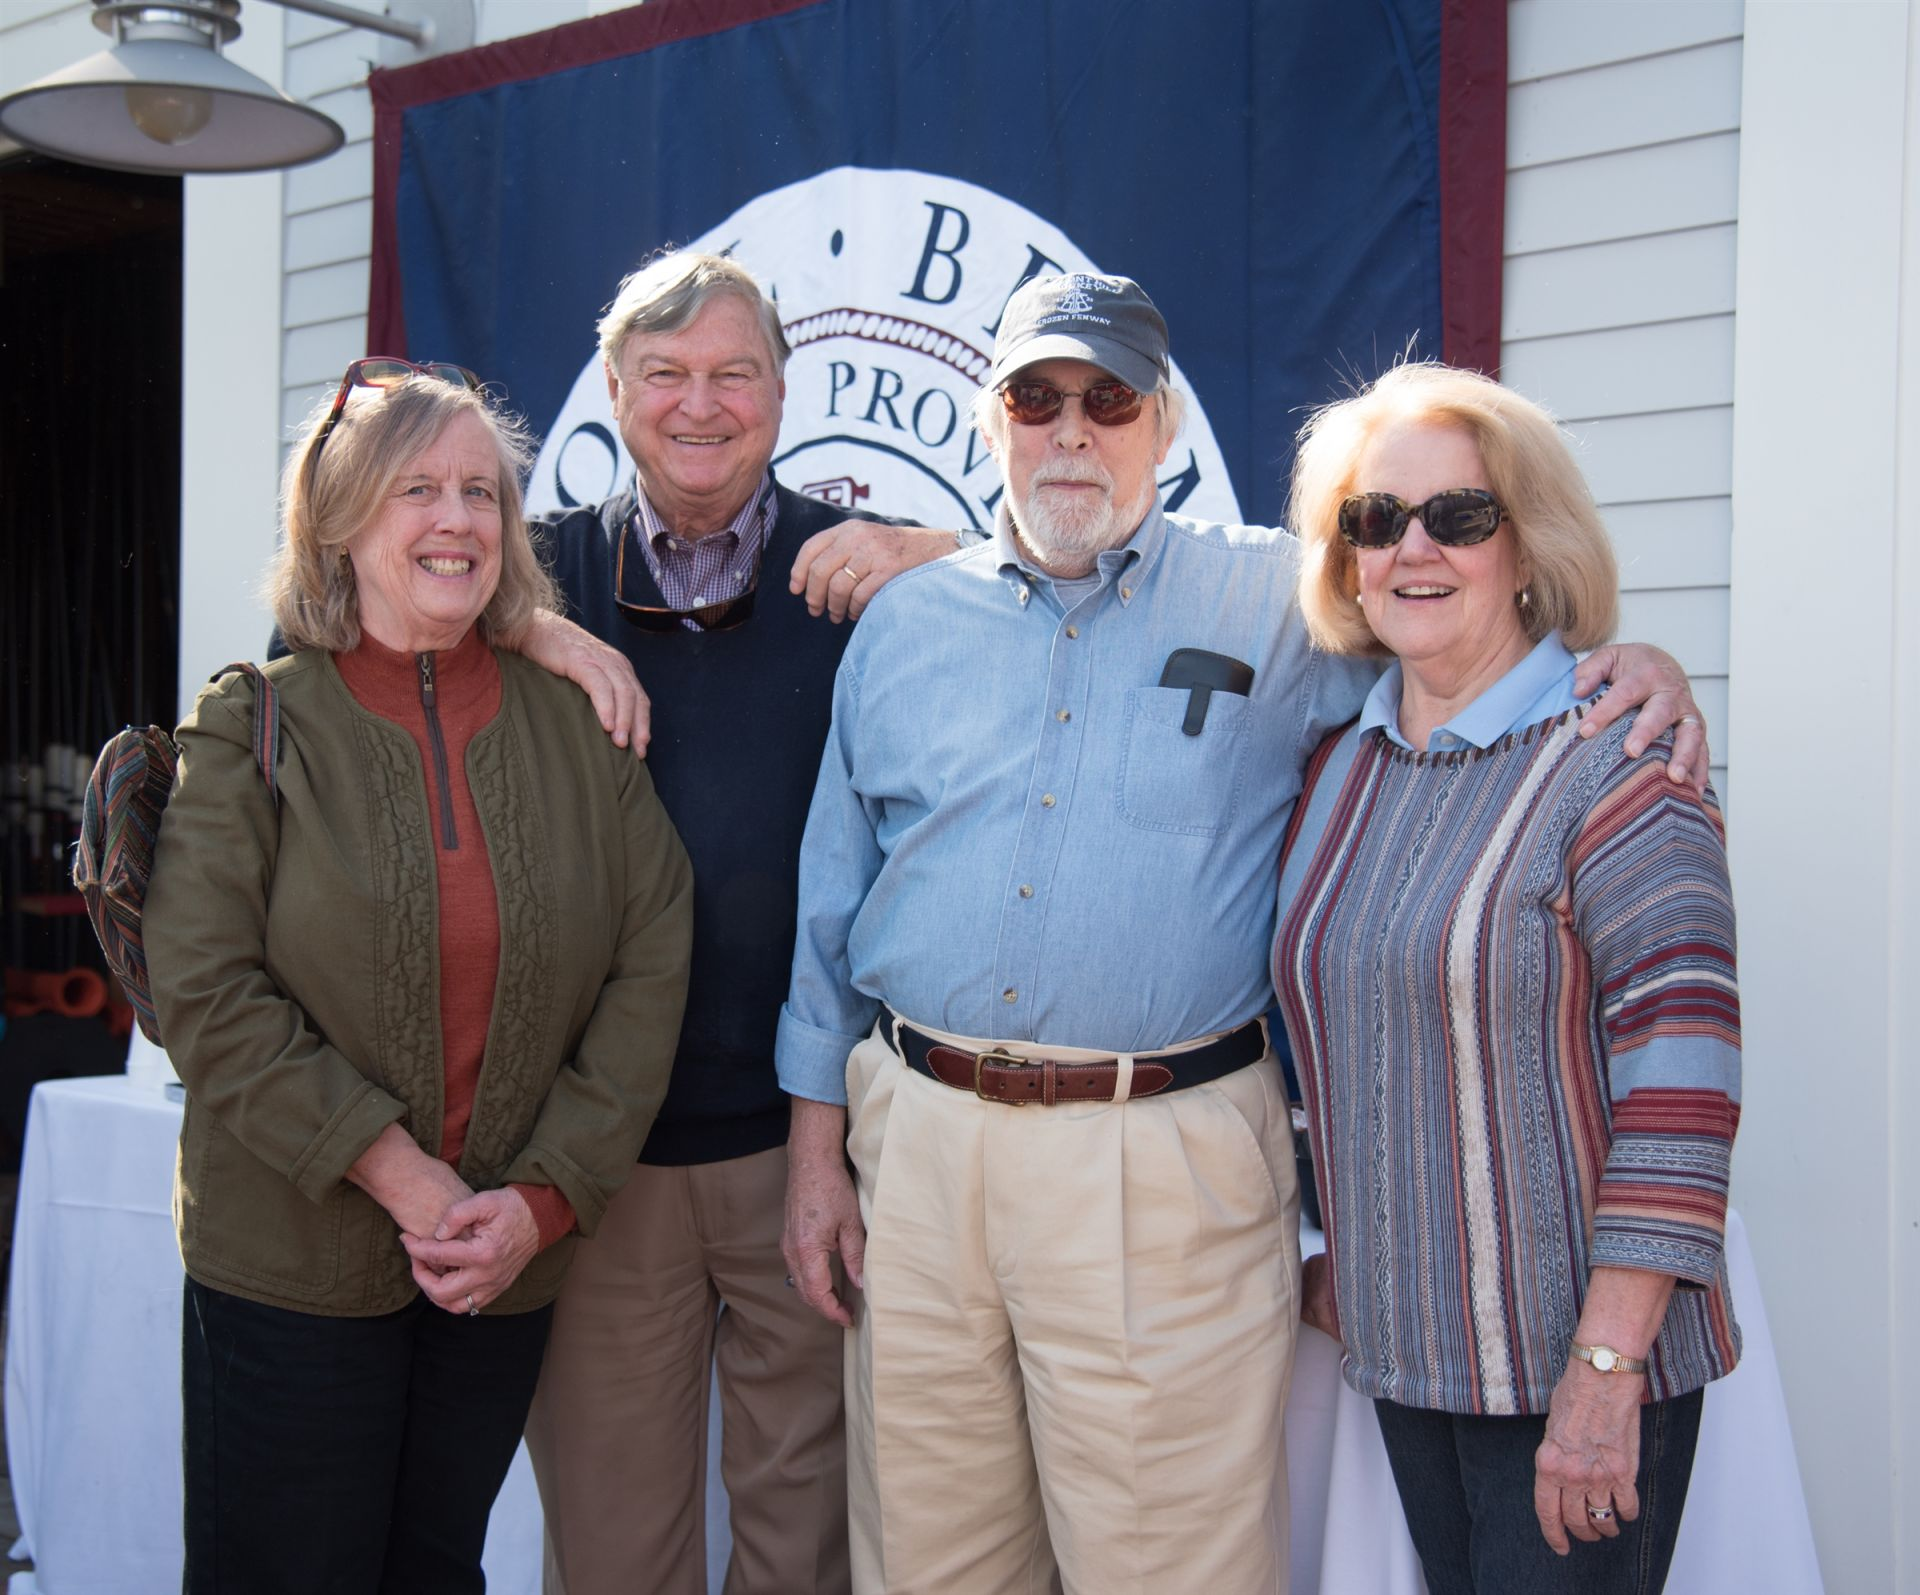 Sandy Downes, Greg Downes '57, Dave Brainard '58, and Sallie Brainard at the Head of the Charles, October 2017.